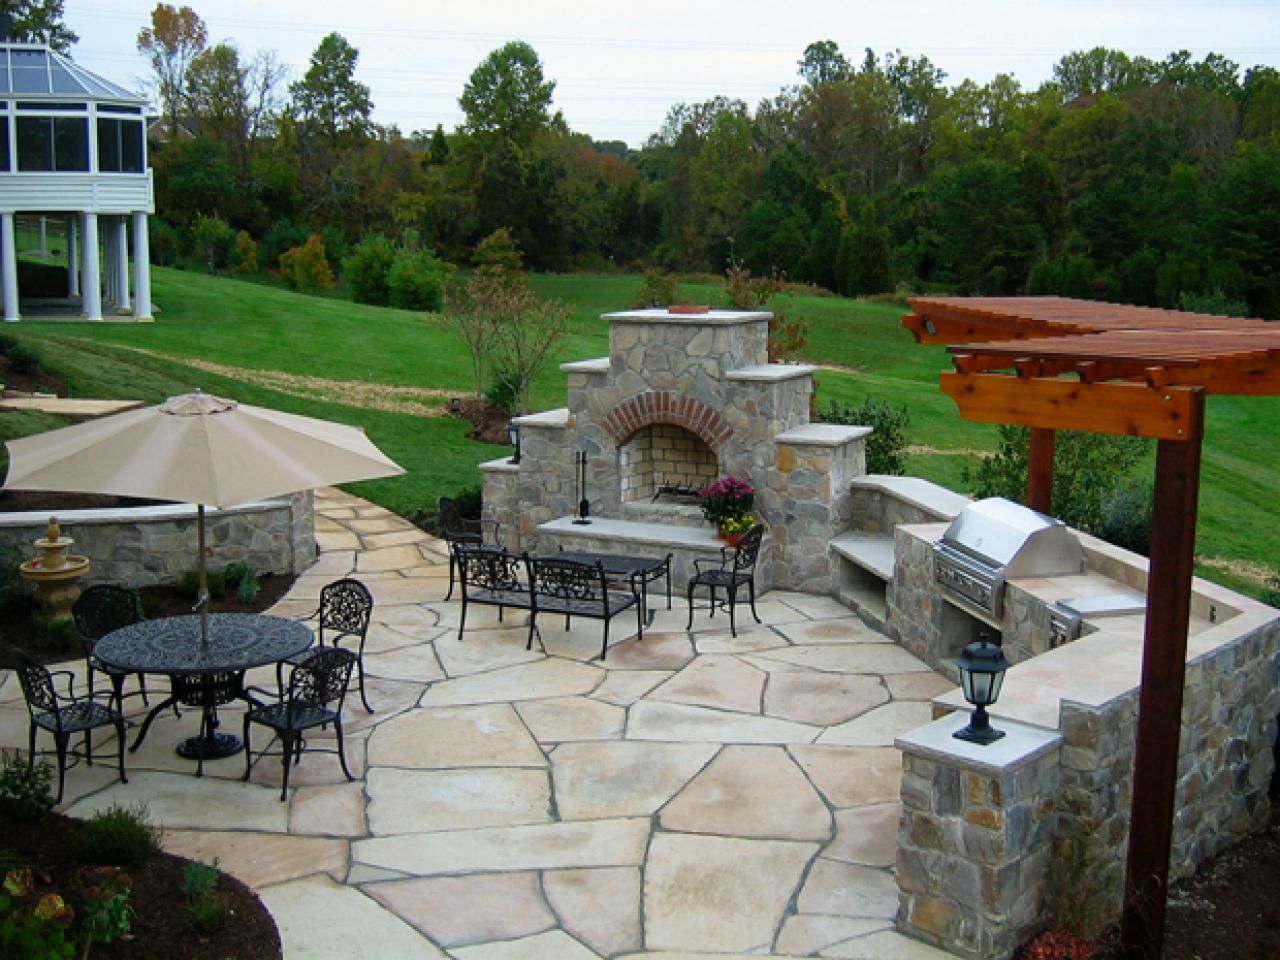 Patio ideas outdoor spaces patio ideas decks for Patio deck decorating ideas